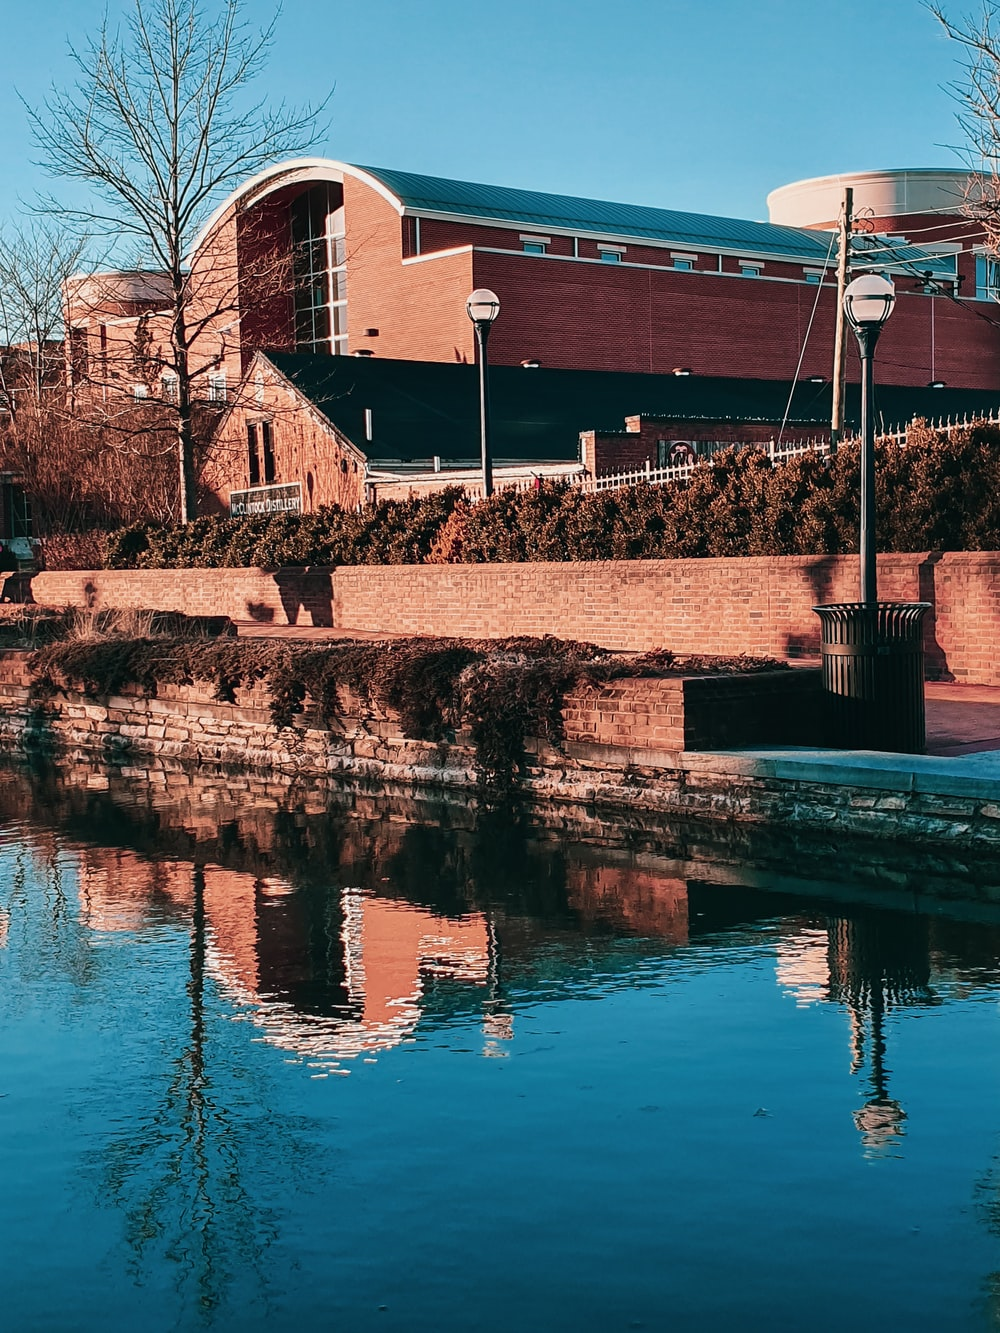 brown brick building near body of water during daytime